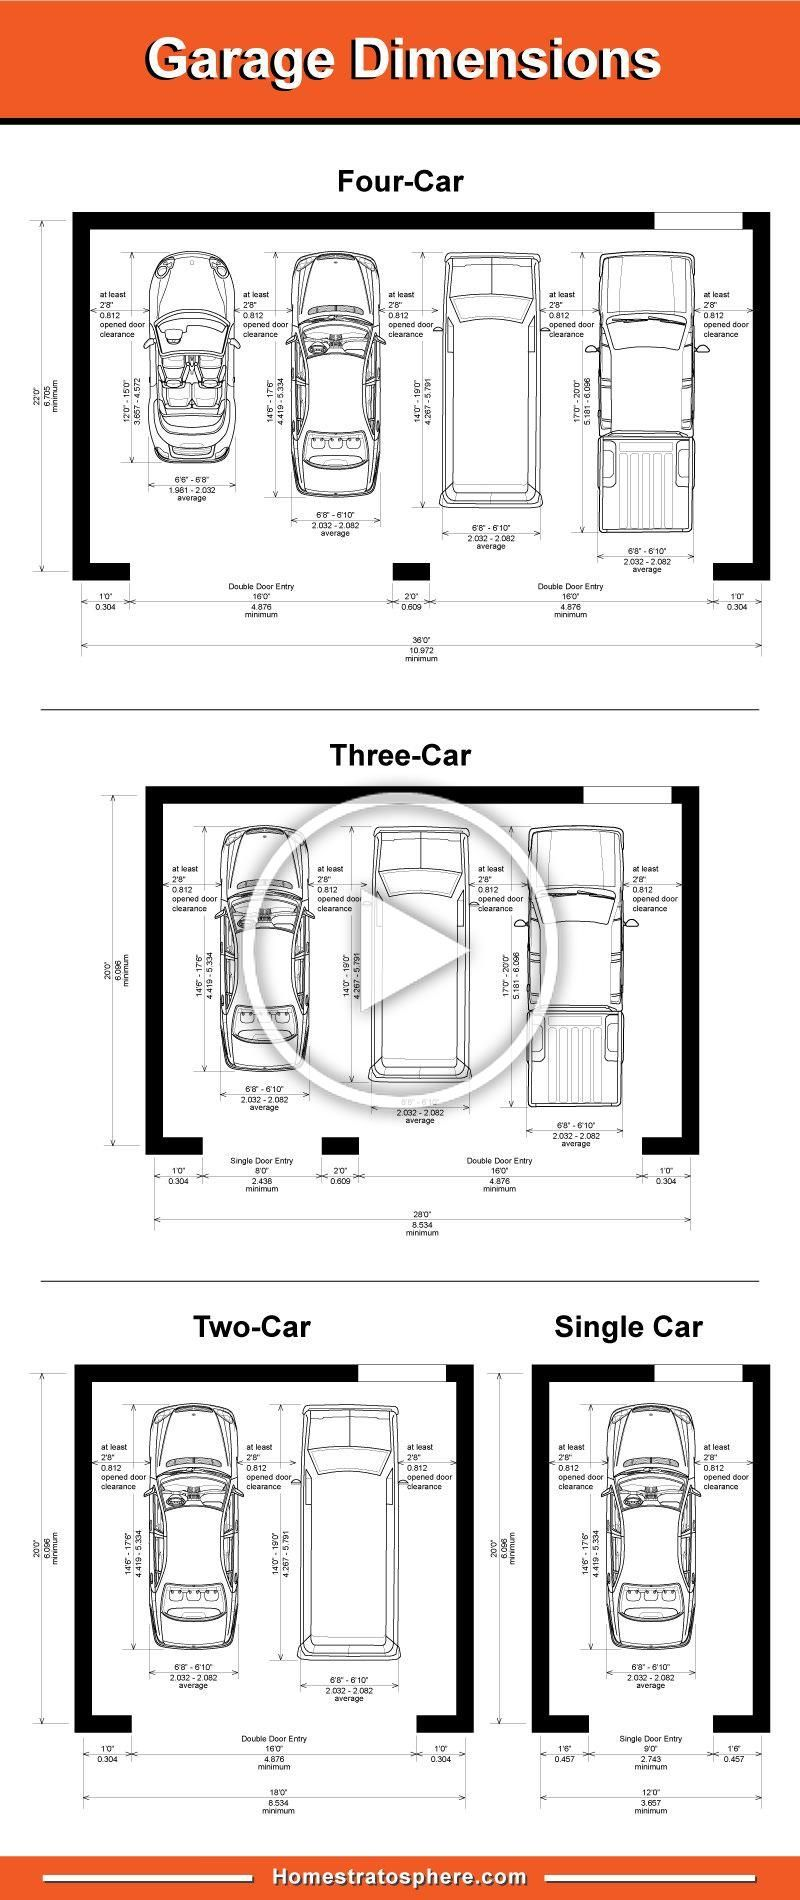 Illustrated Diagrams Setting Out The Standard Garage